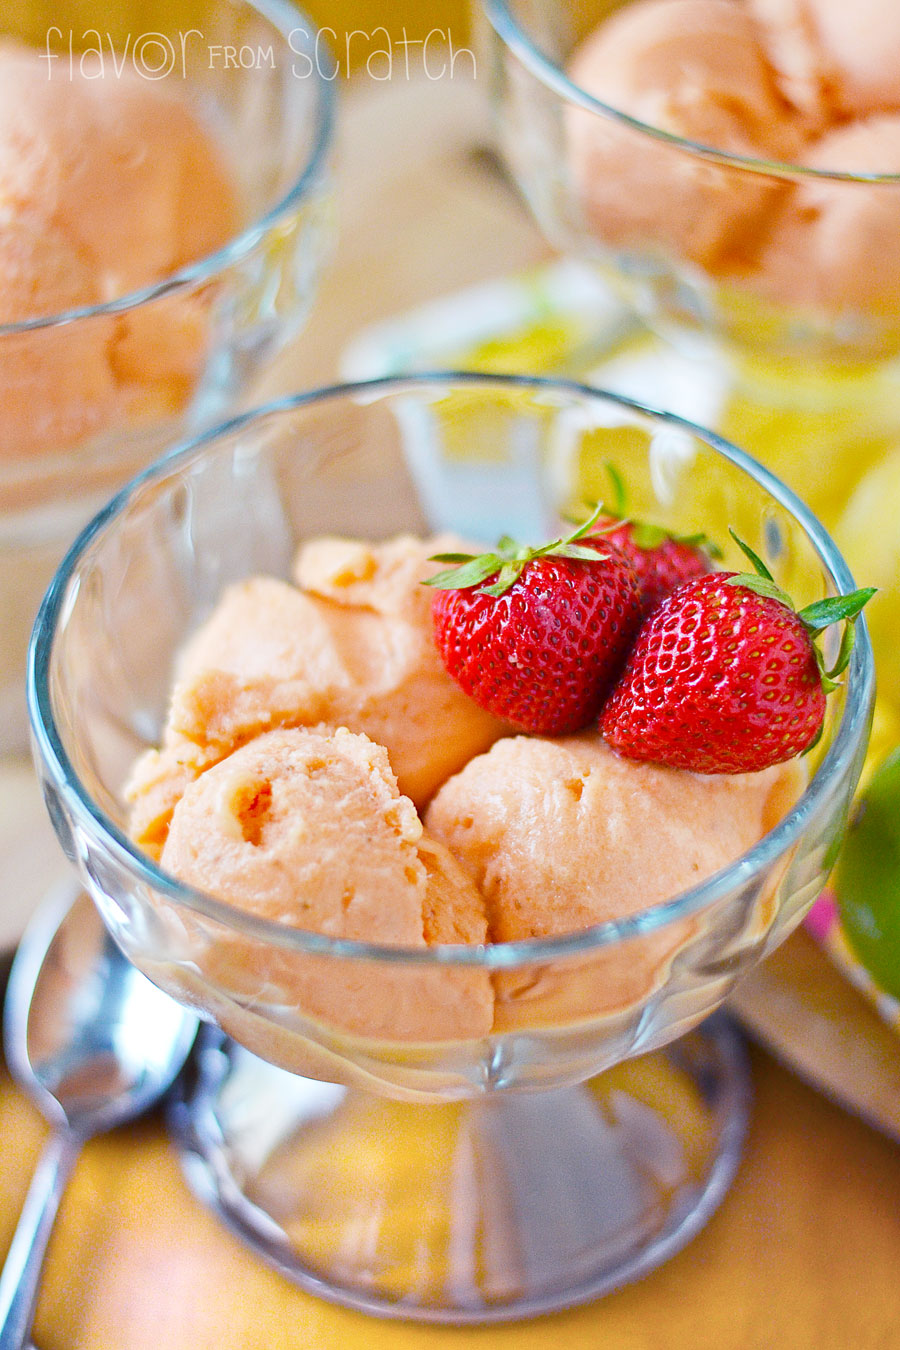 Strawberries with sugar. Freeze sorbet yourself